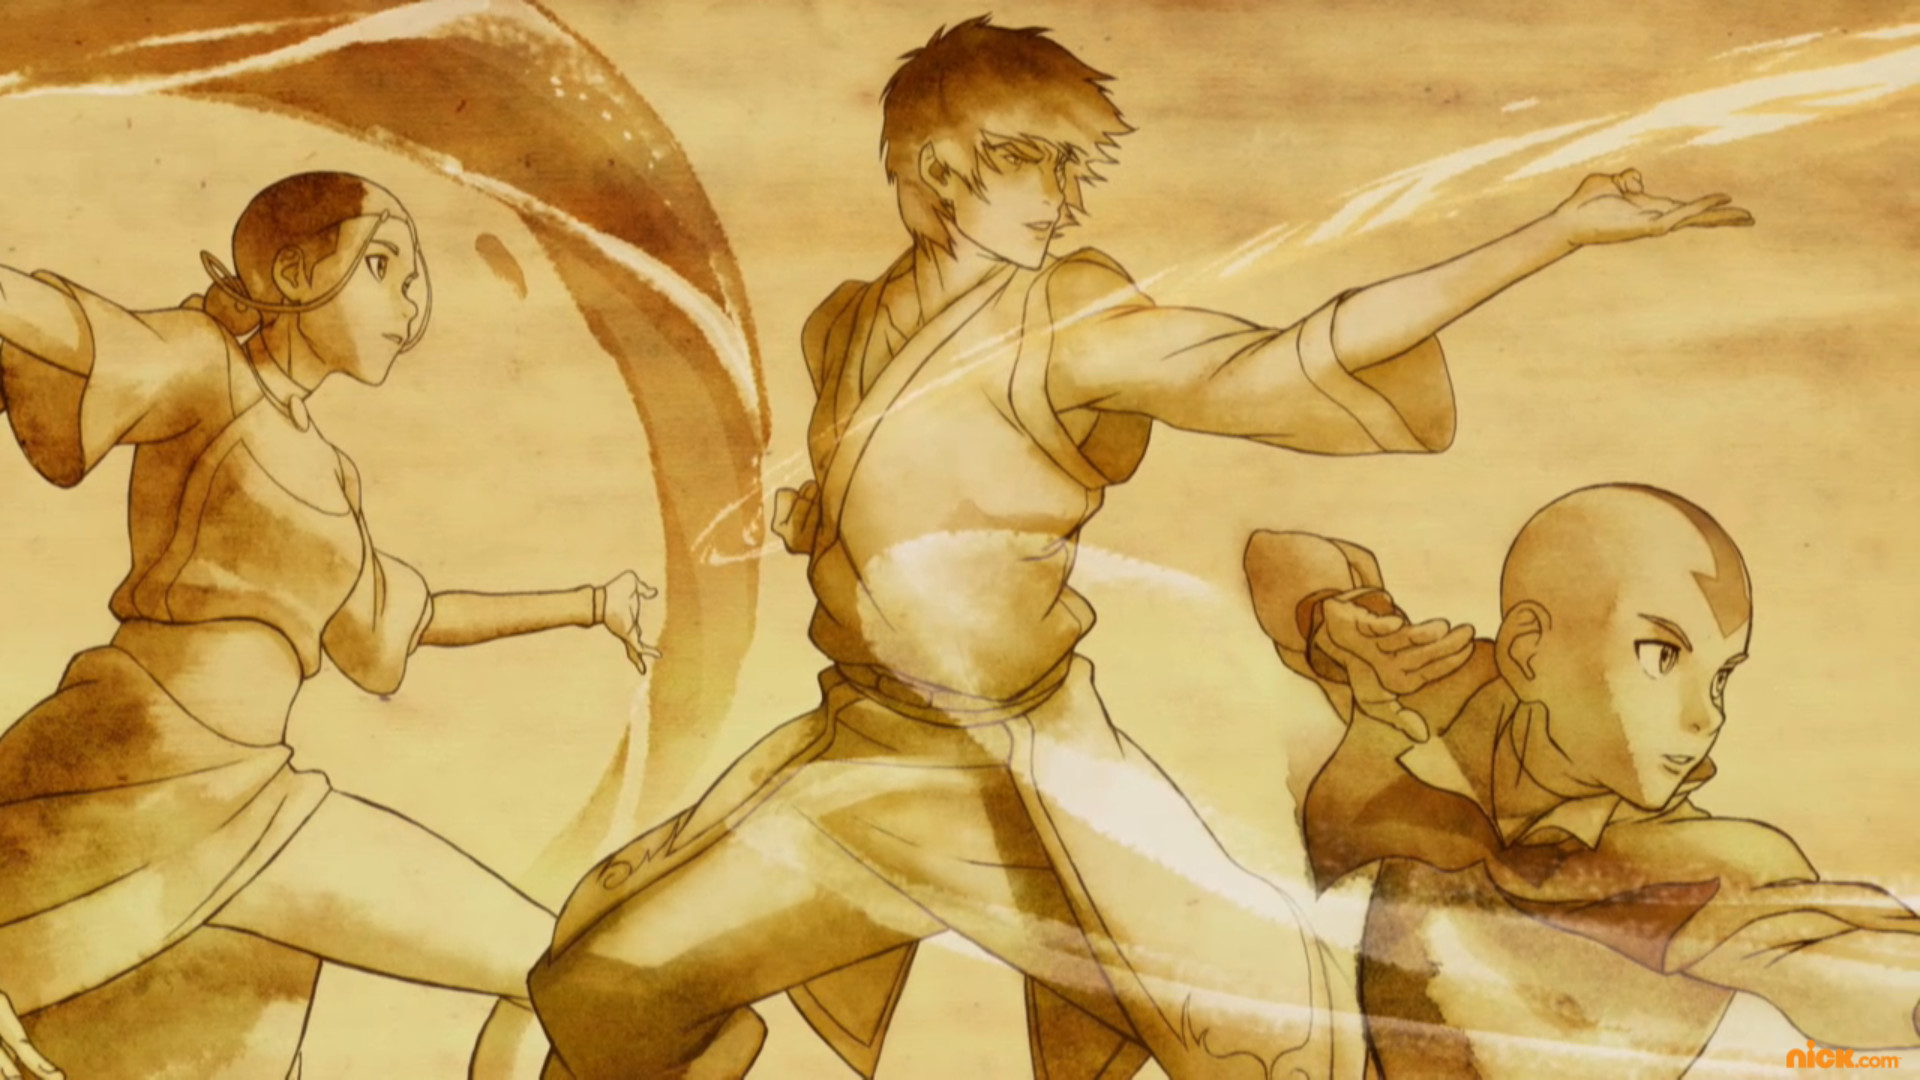 1920x1080 92 Avatar The Legend Of Korra HD Wallpapers